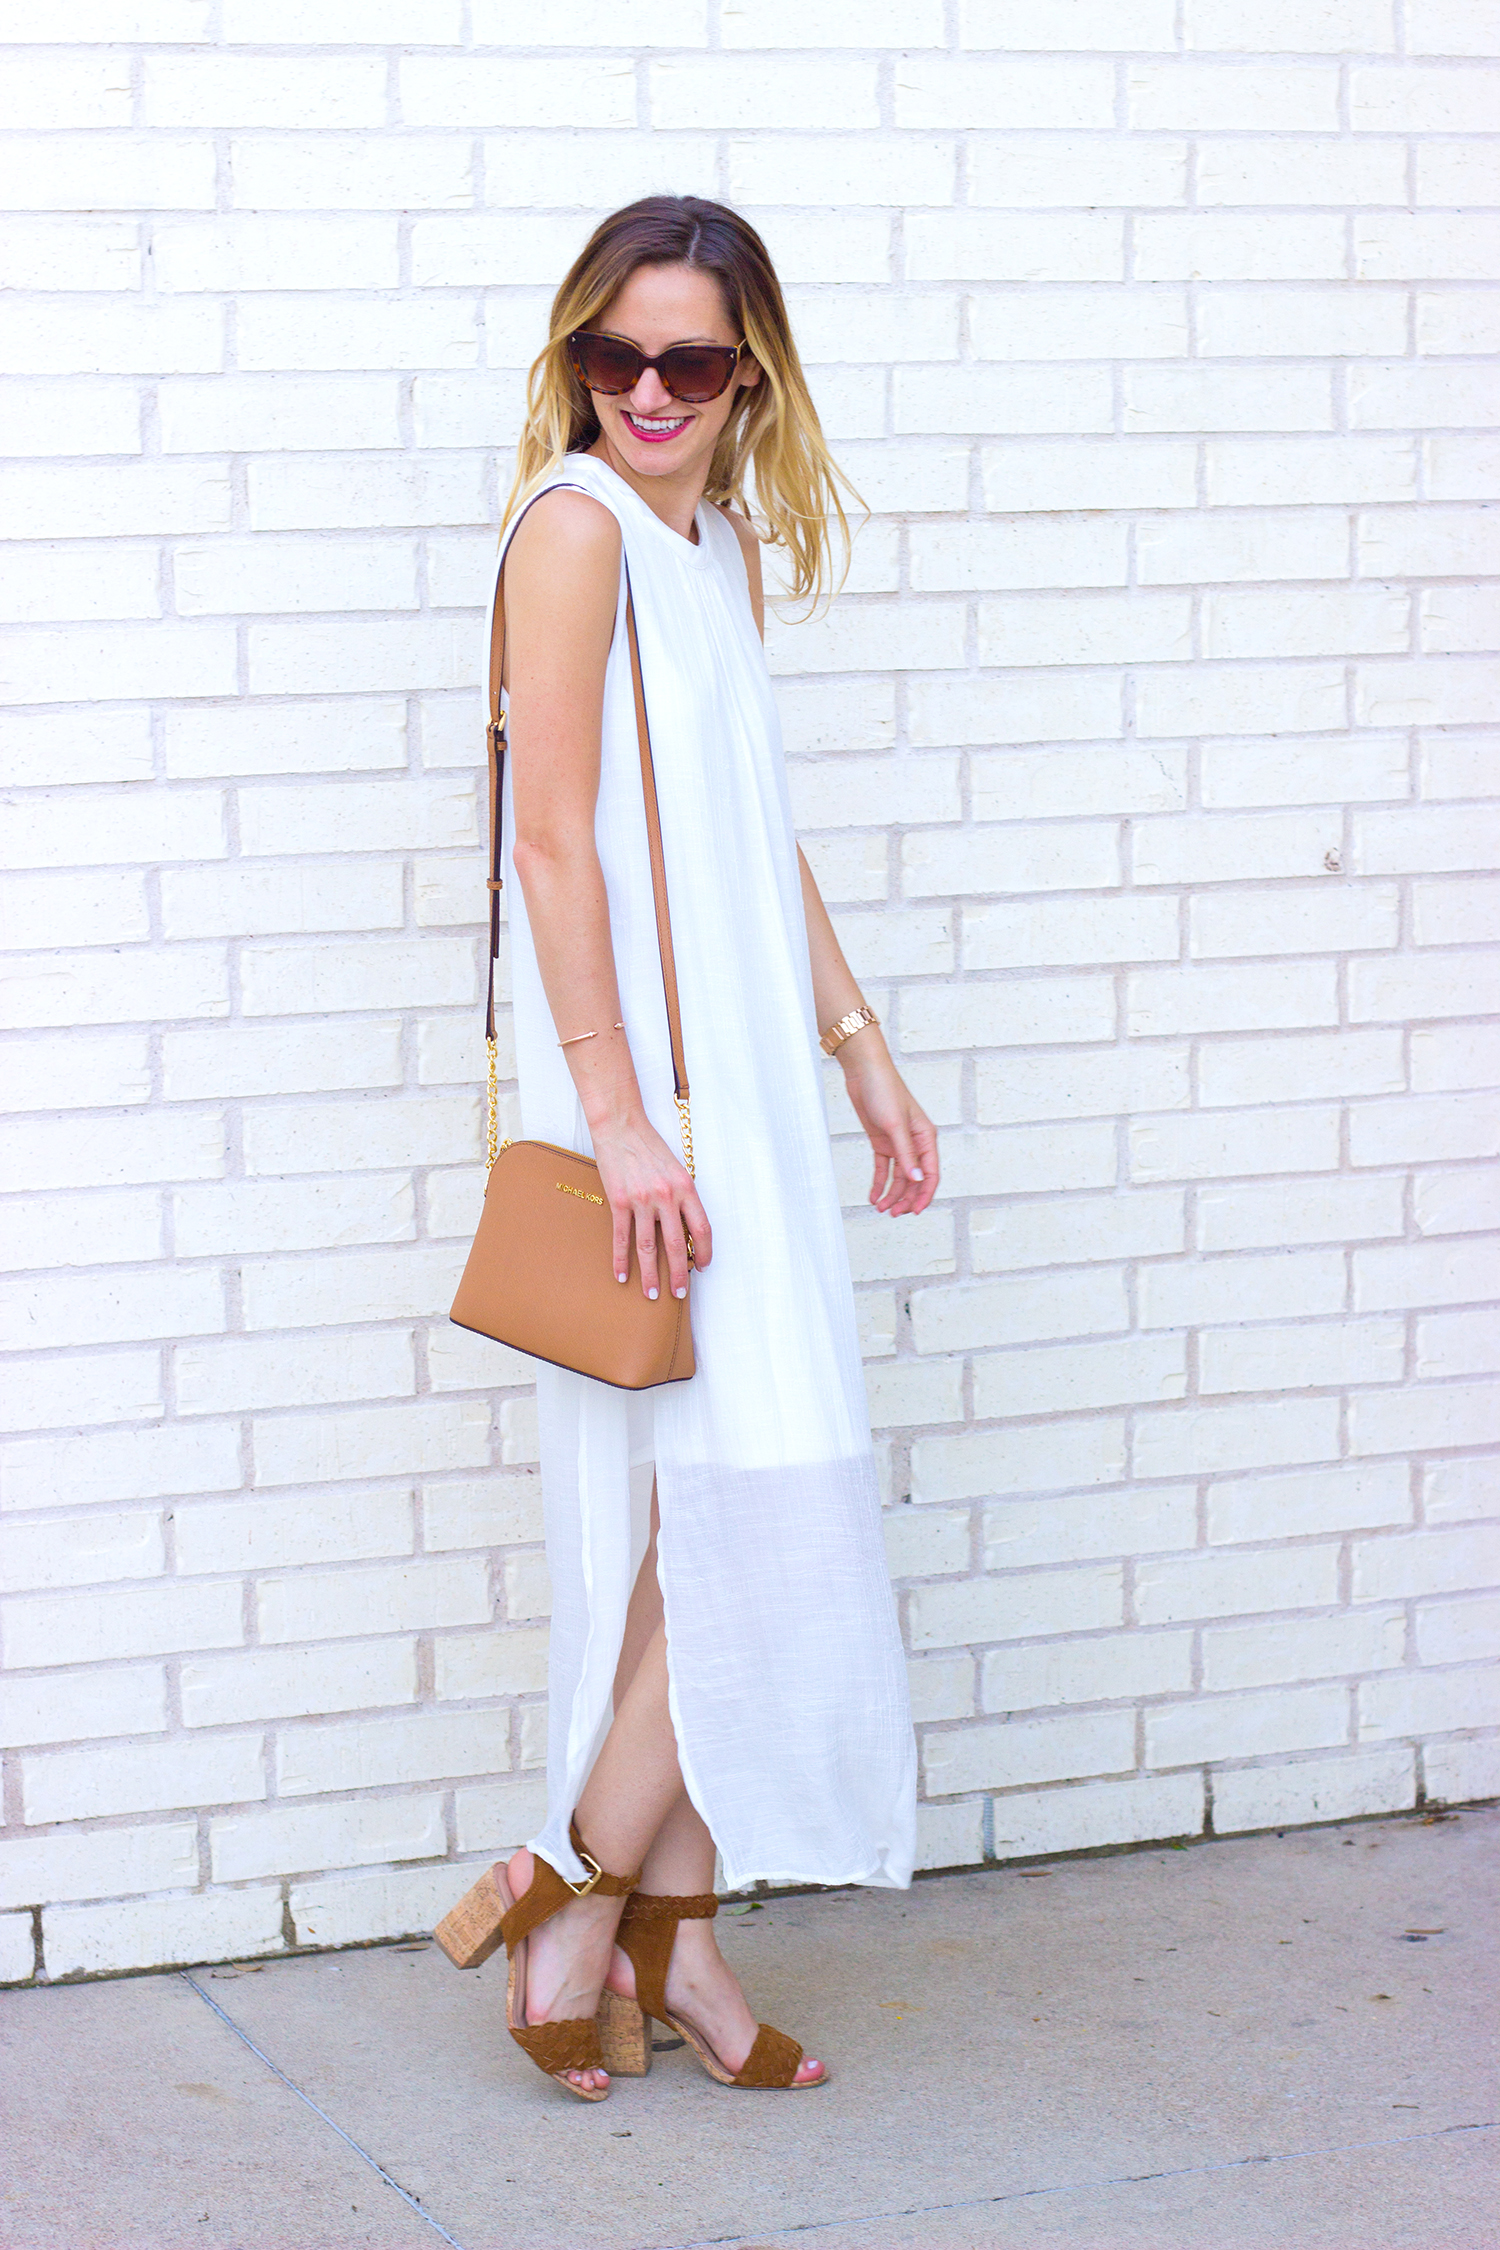 livvyland-blog-olivia-watson-white-sheer-midi-dress-painted-threads-braided-sandal-heels-austin-texas-fashion-blogger-rose-gold-kendra-scott-prada-cateye-sunglasses-spring-outfit-8